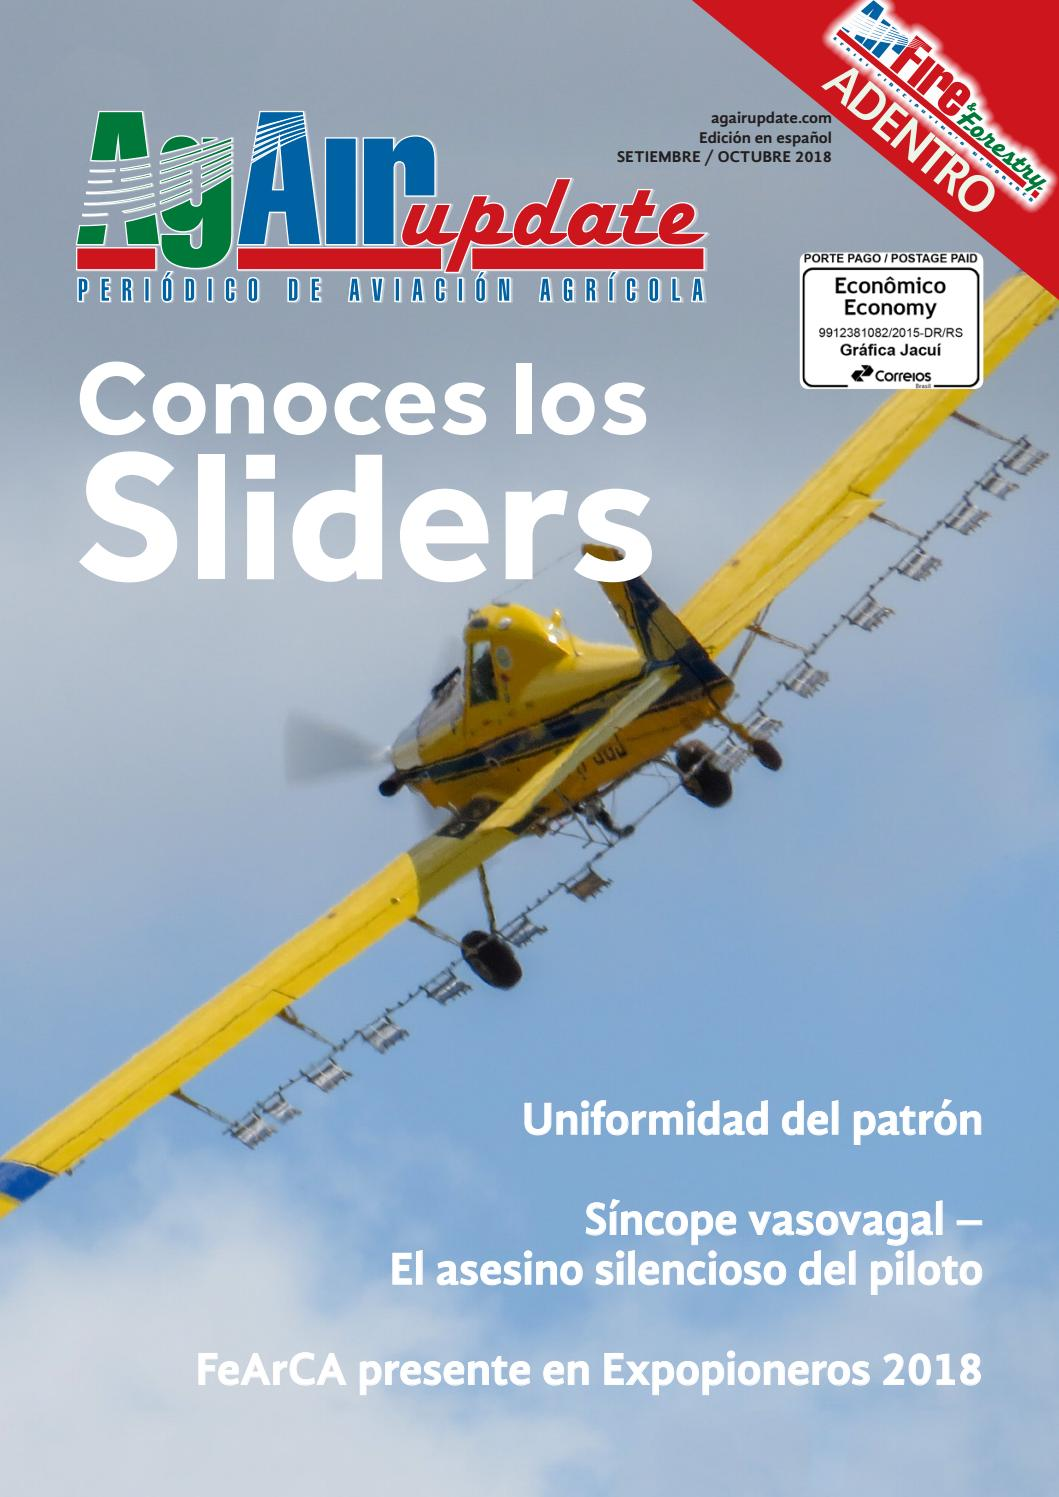 Setiembre 2018 - Edición en español by AgAir Update - issuu e53be1a039